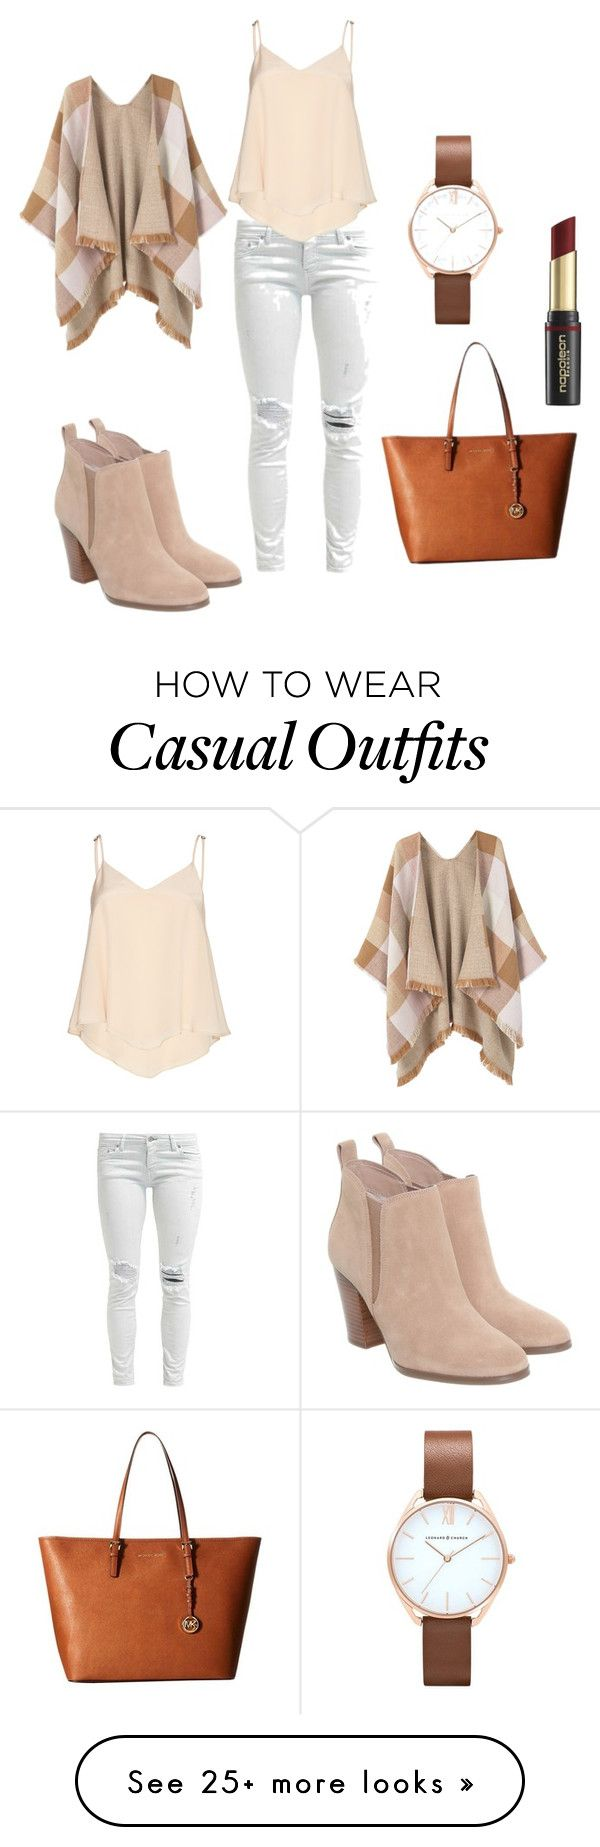 """Naturals & casual chic"" by cattttn-1 on Polyvore featuring Michael Kors, Alice + Olivia, MANGO, MICHAEL Michael Kors and David Jones"